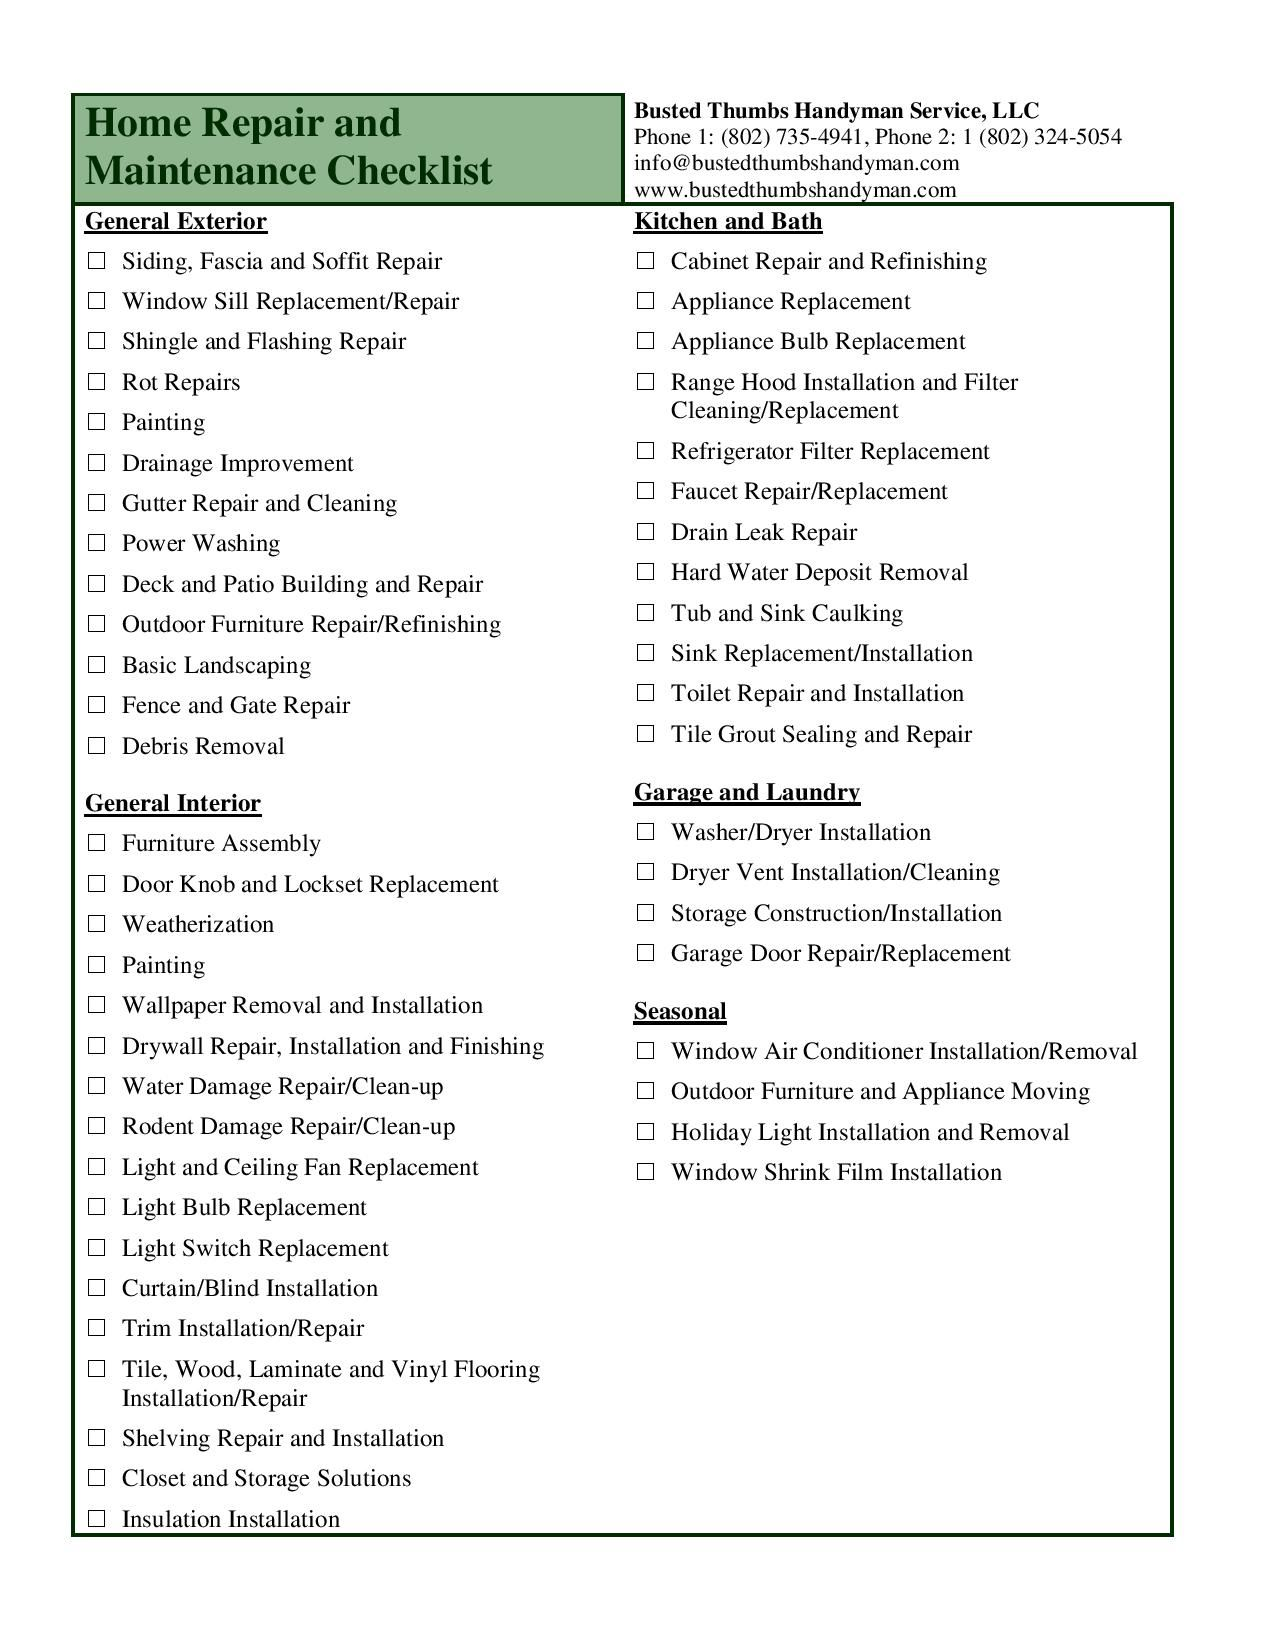 Home remodeling project checklist mlthree com for the for Construction finishing checklist